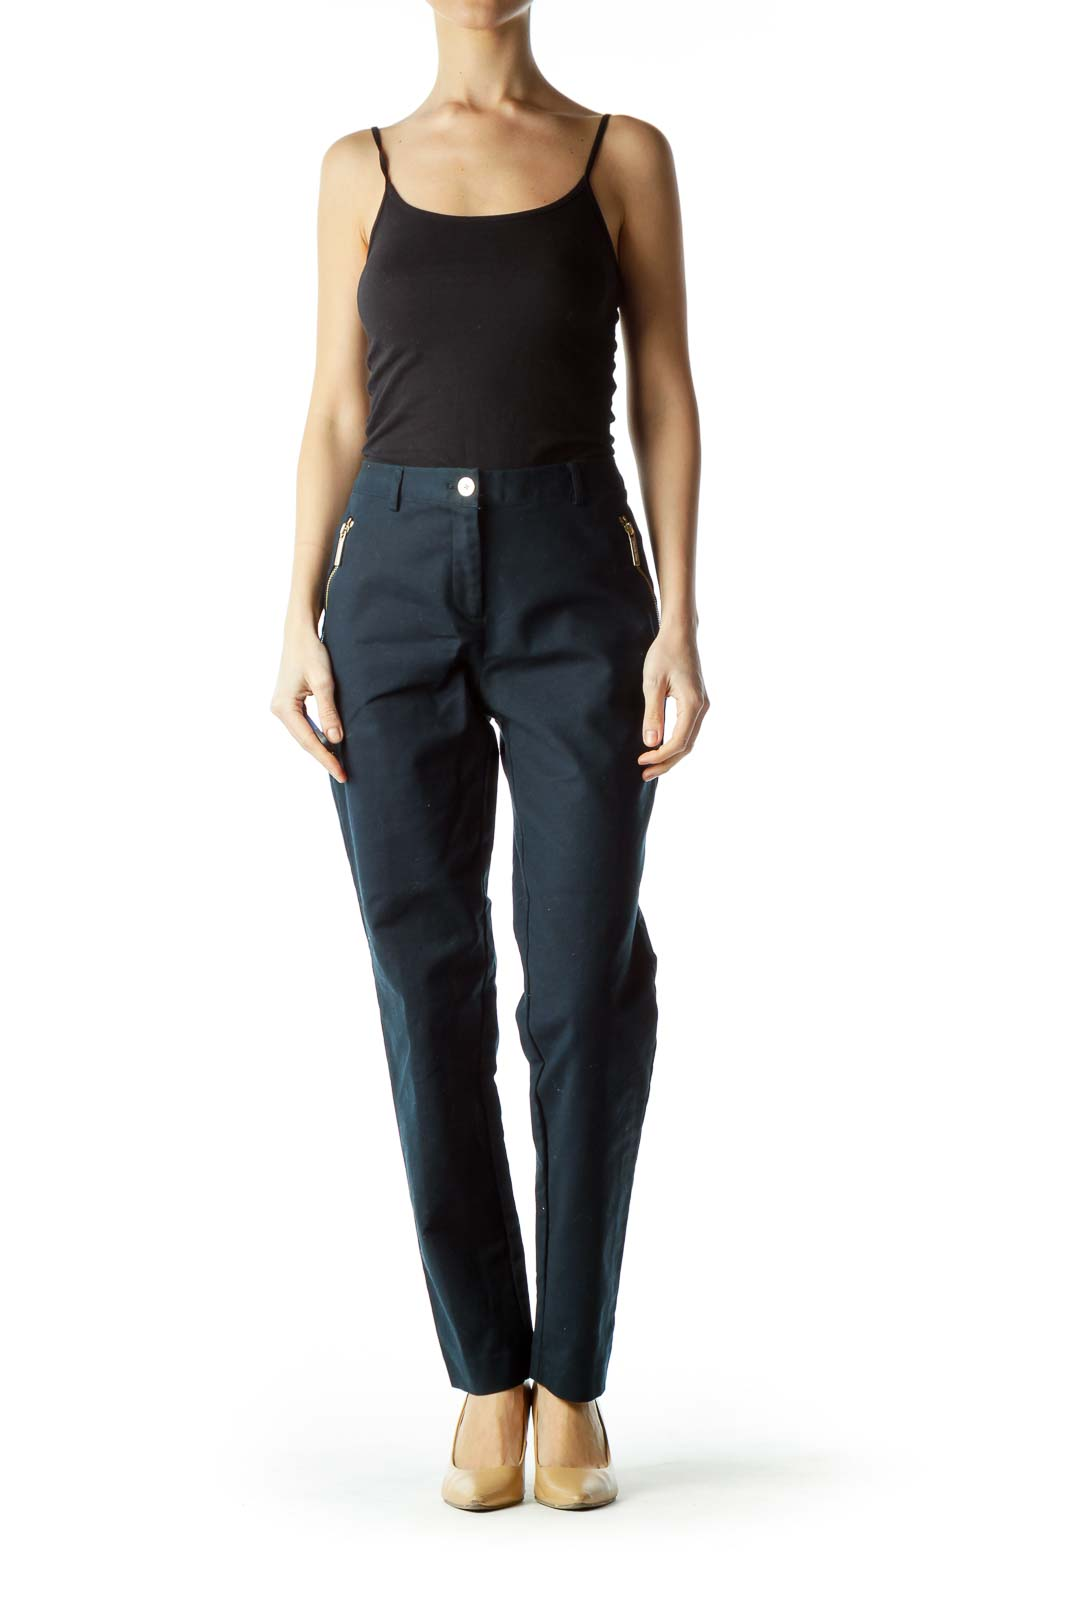 Navy Pants with Gold Zipper Pockets